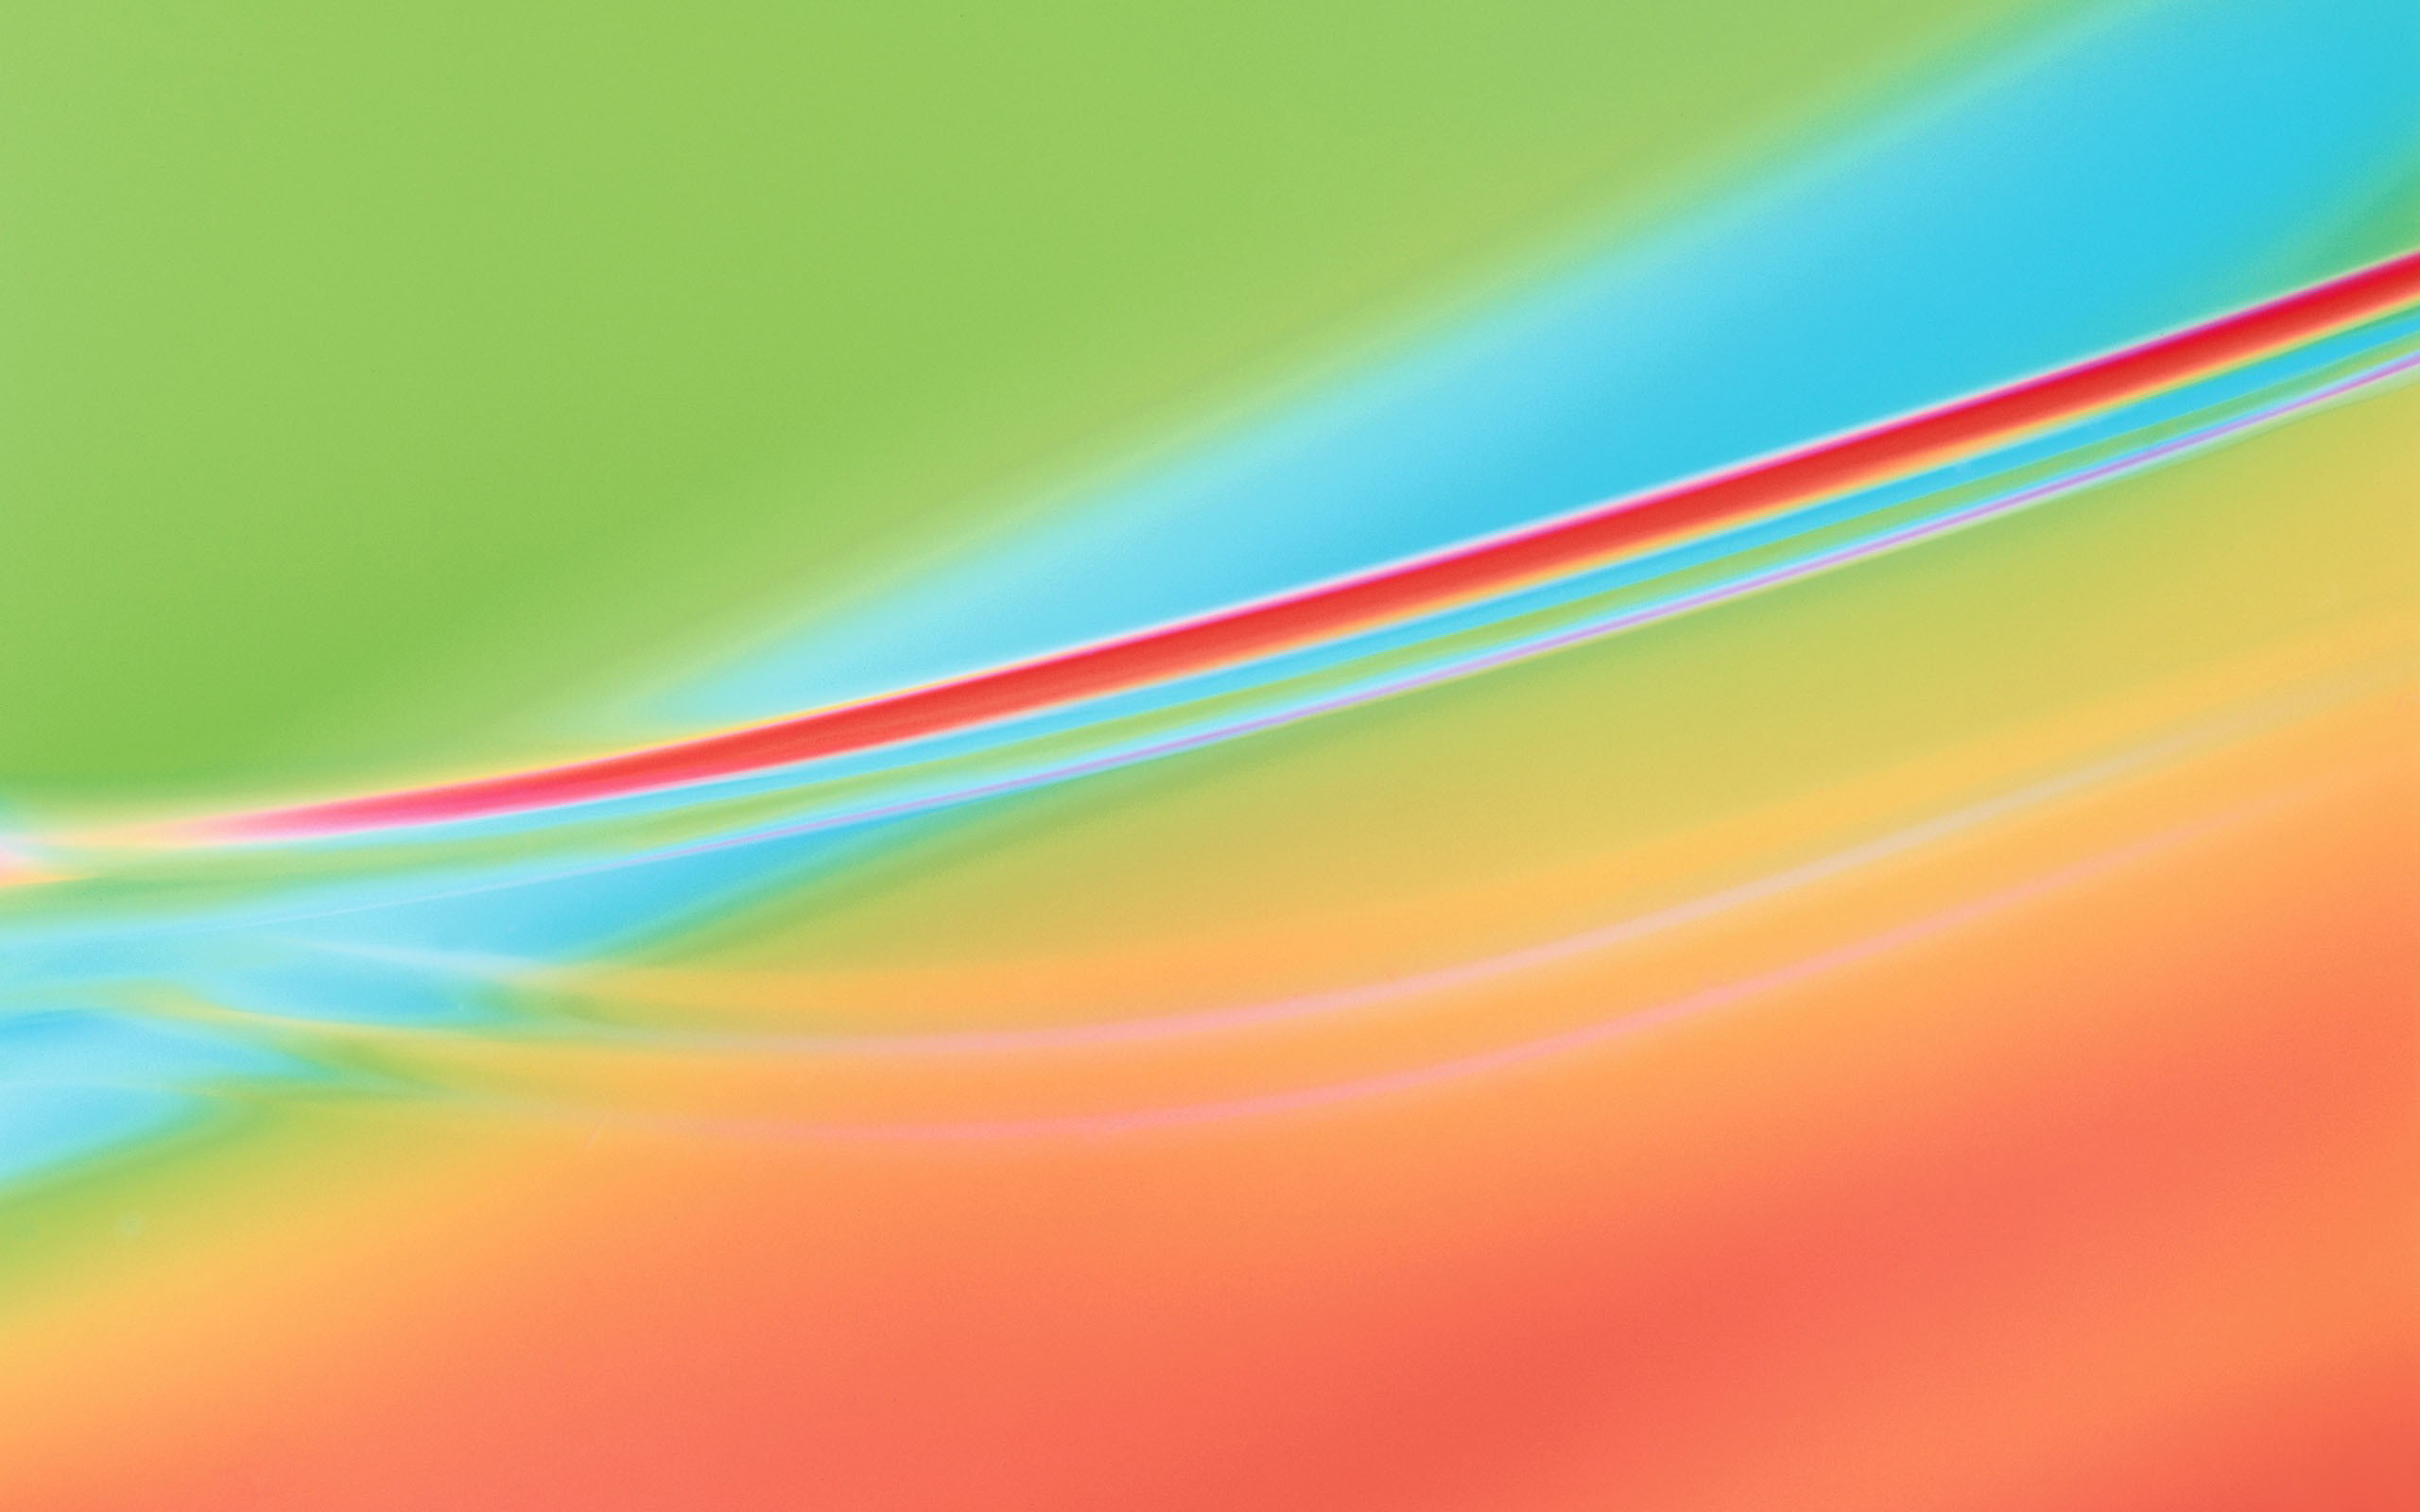 OSX Abstract Wallpaper 12685